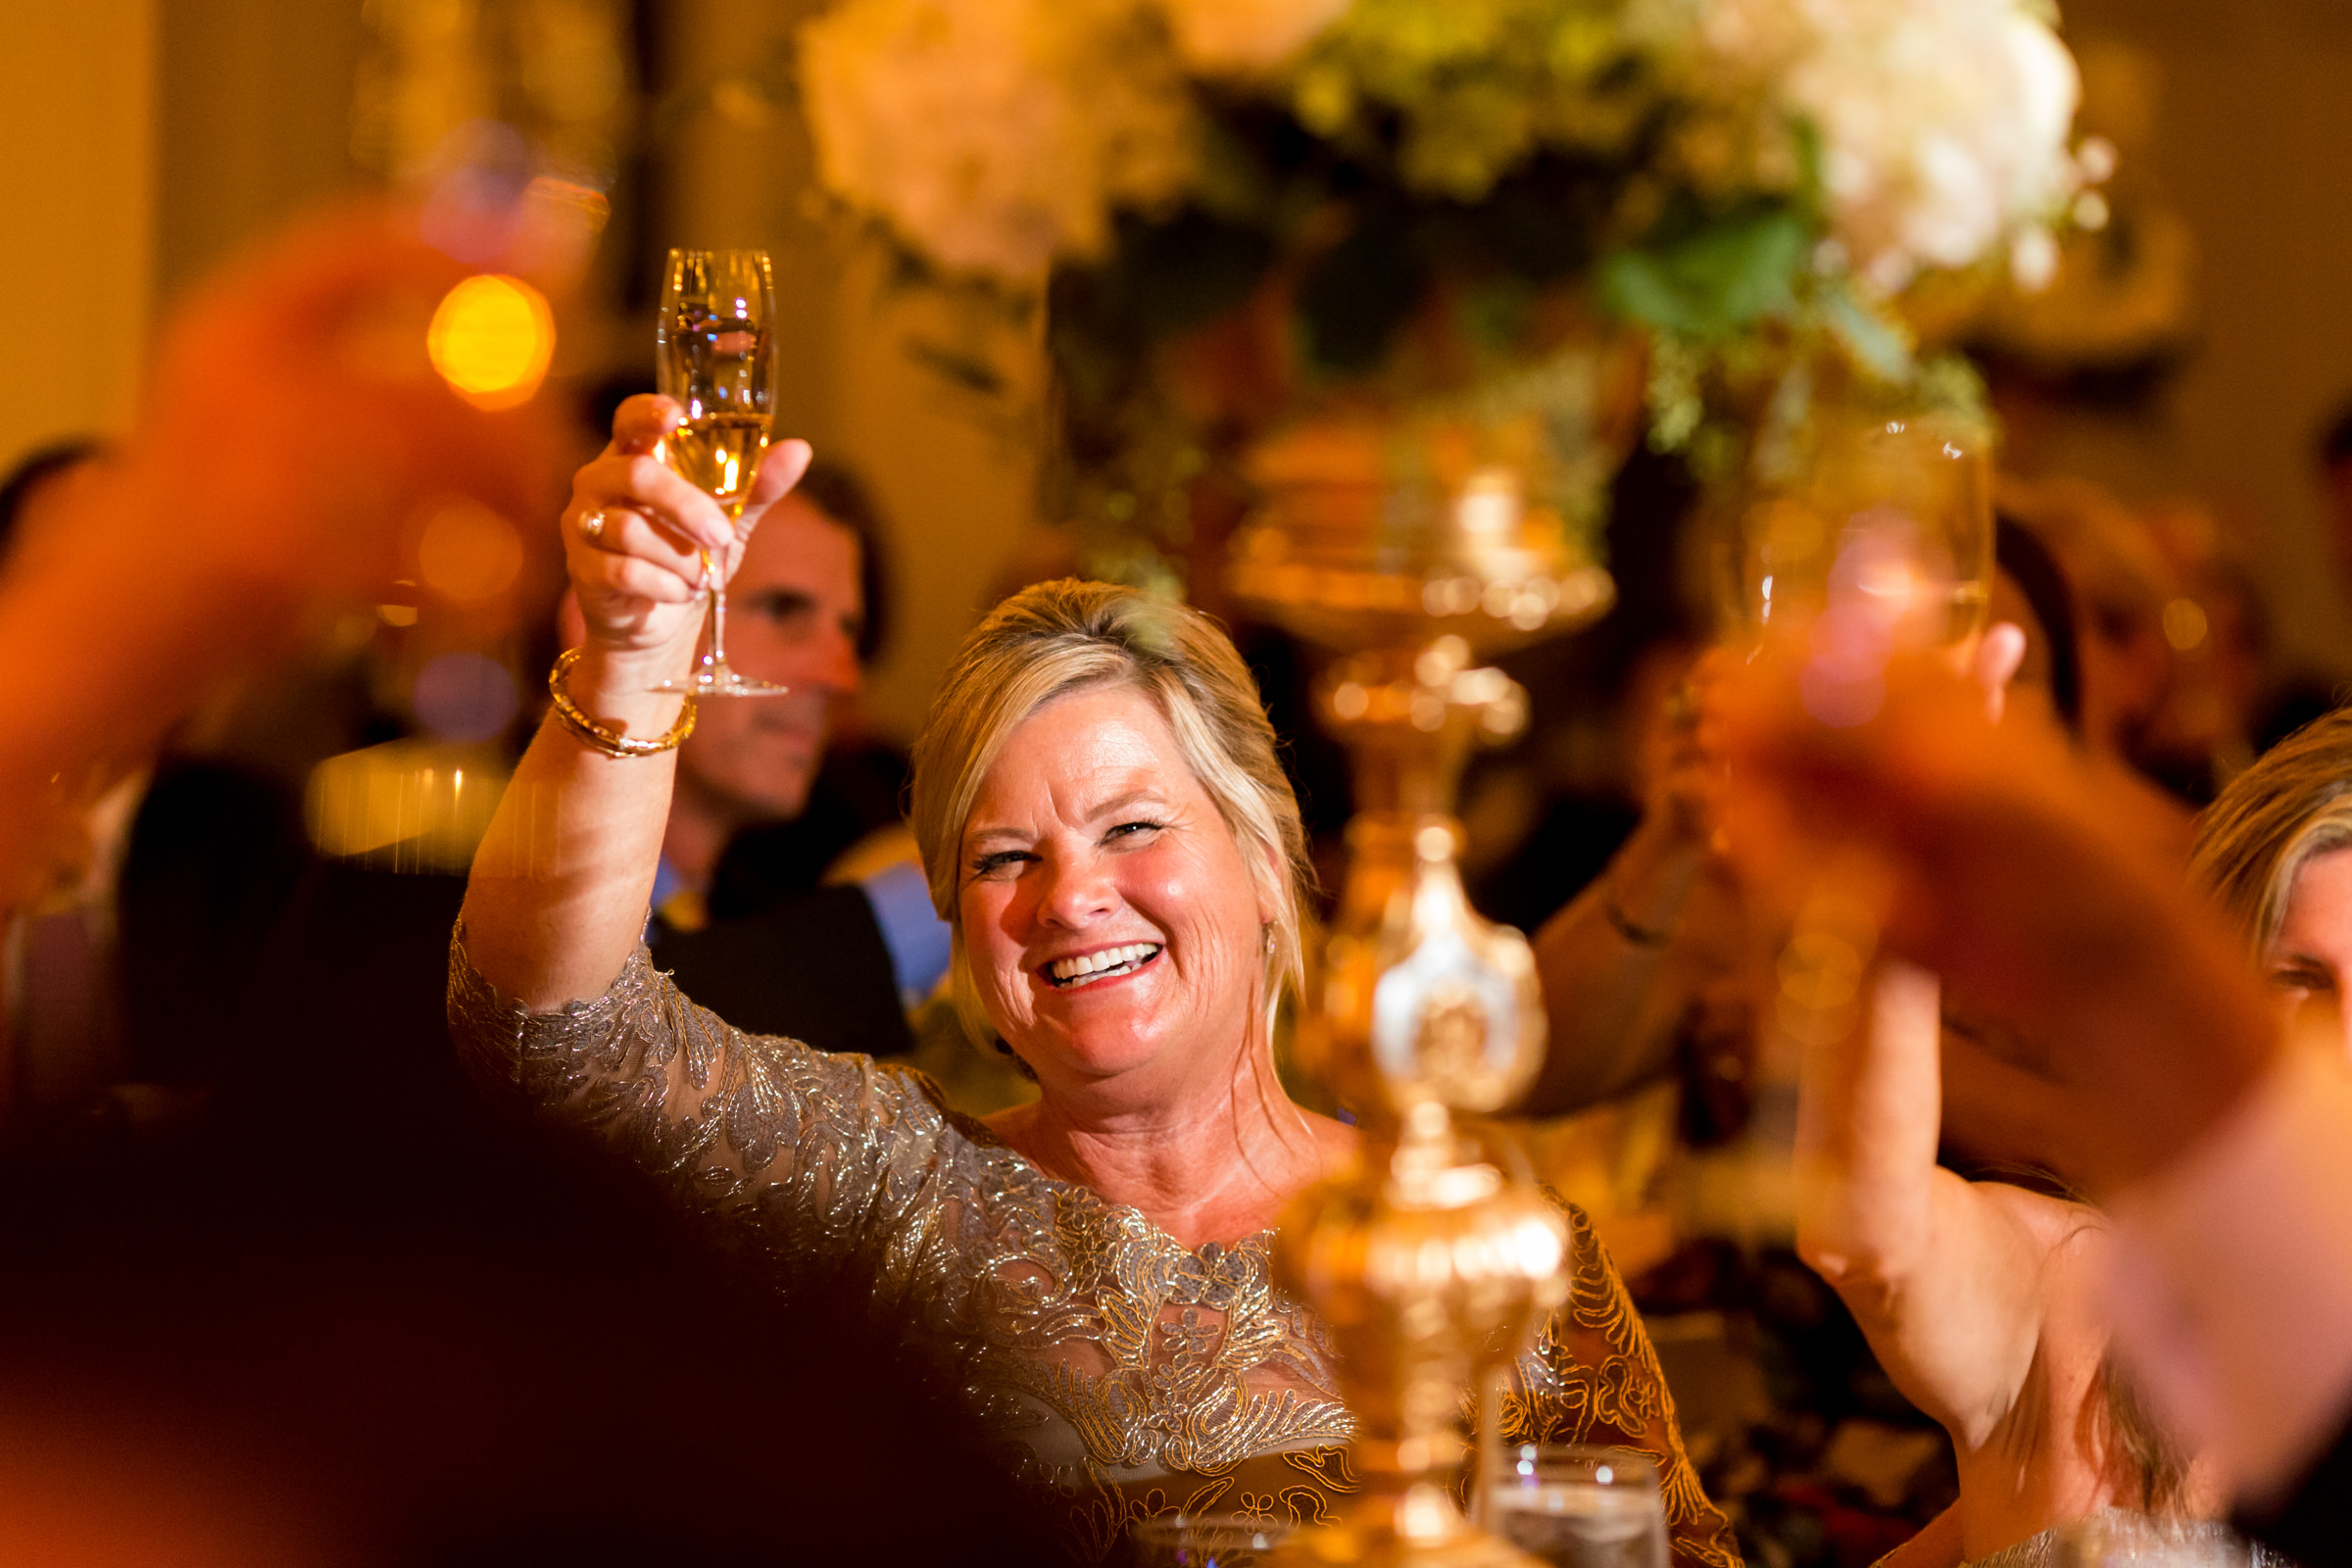 Guests toasting - photo by Procopio Photography